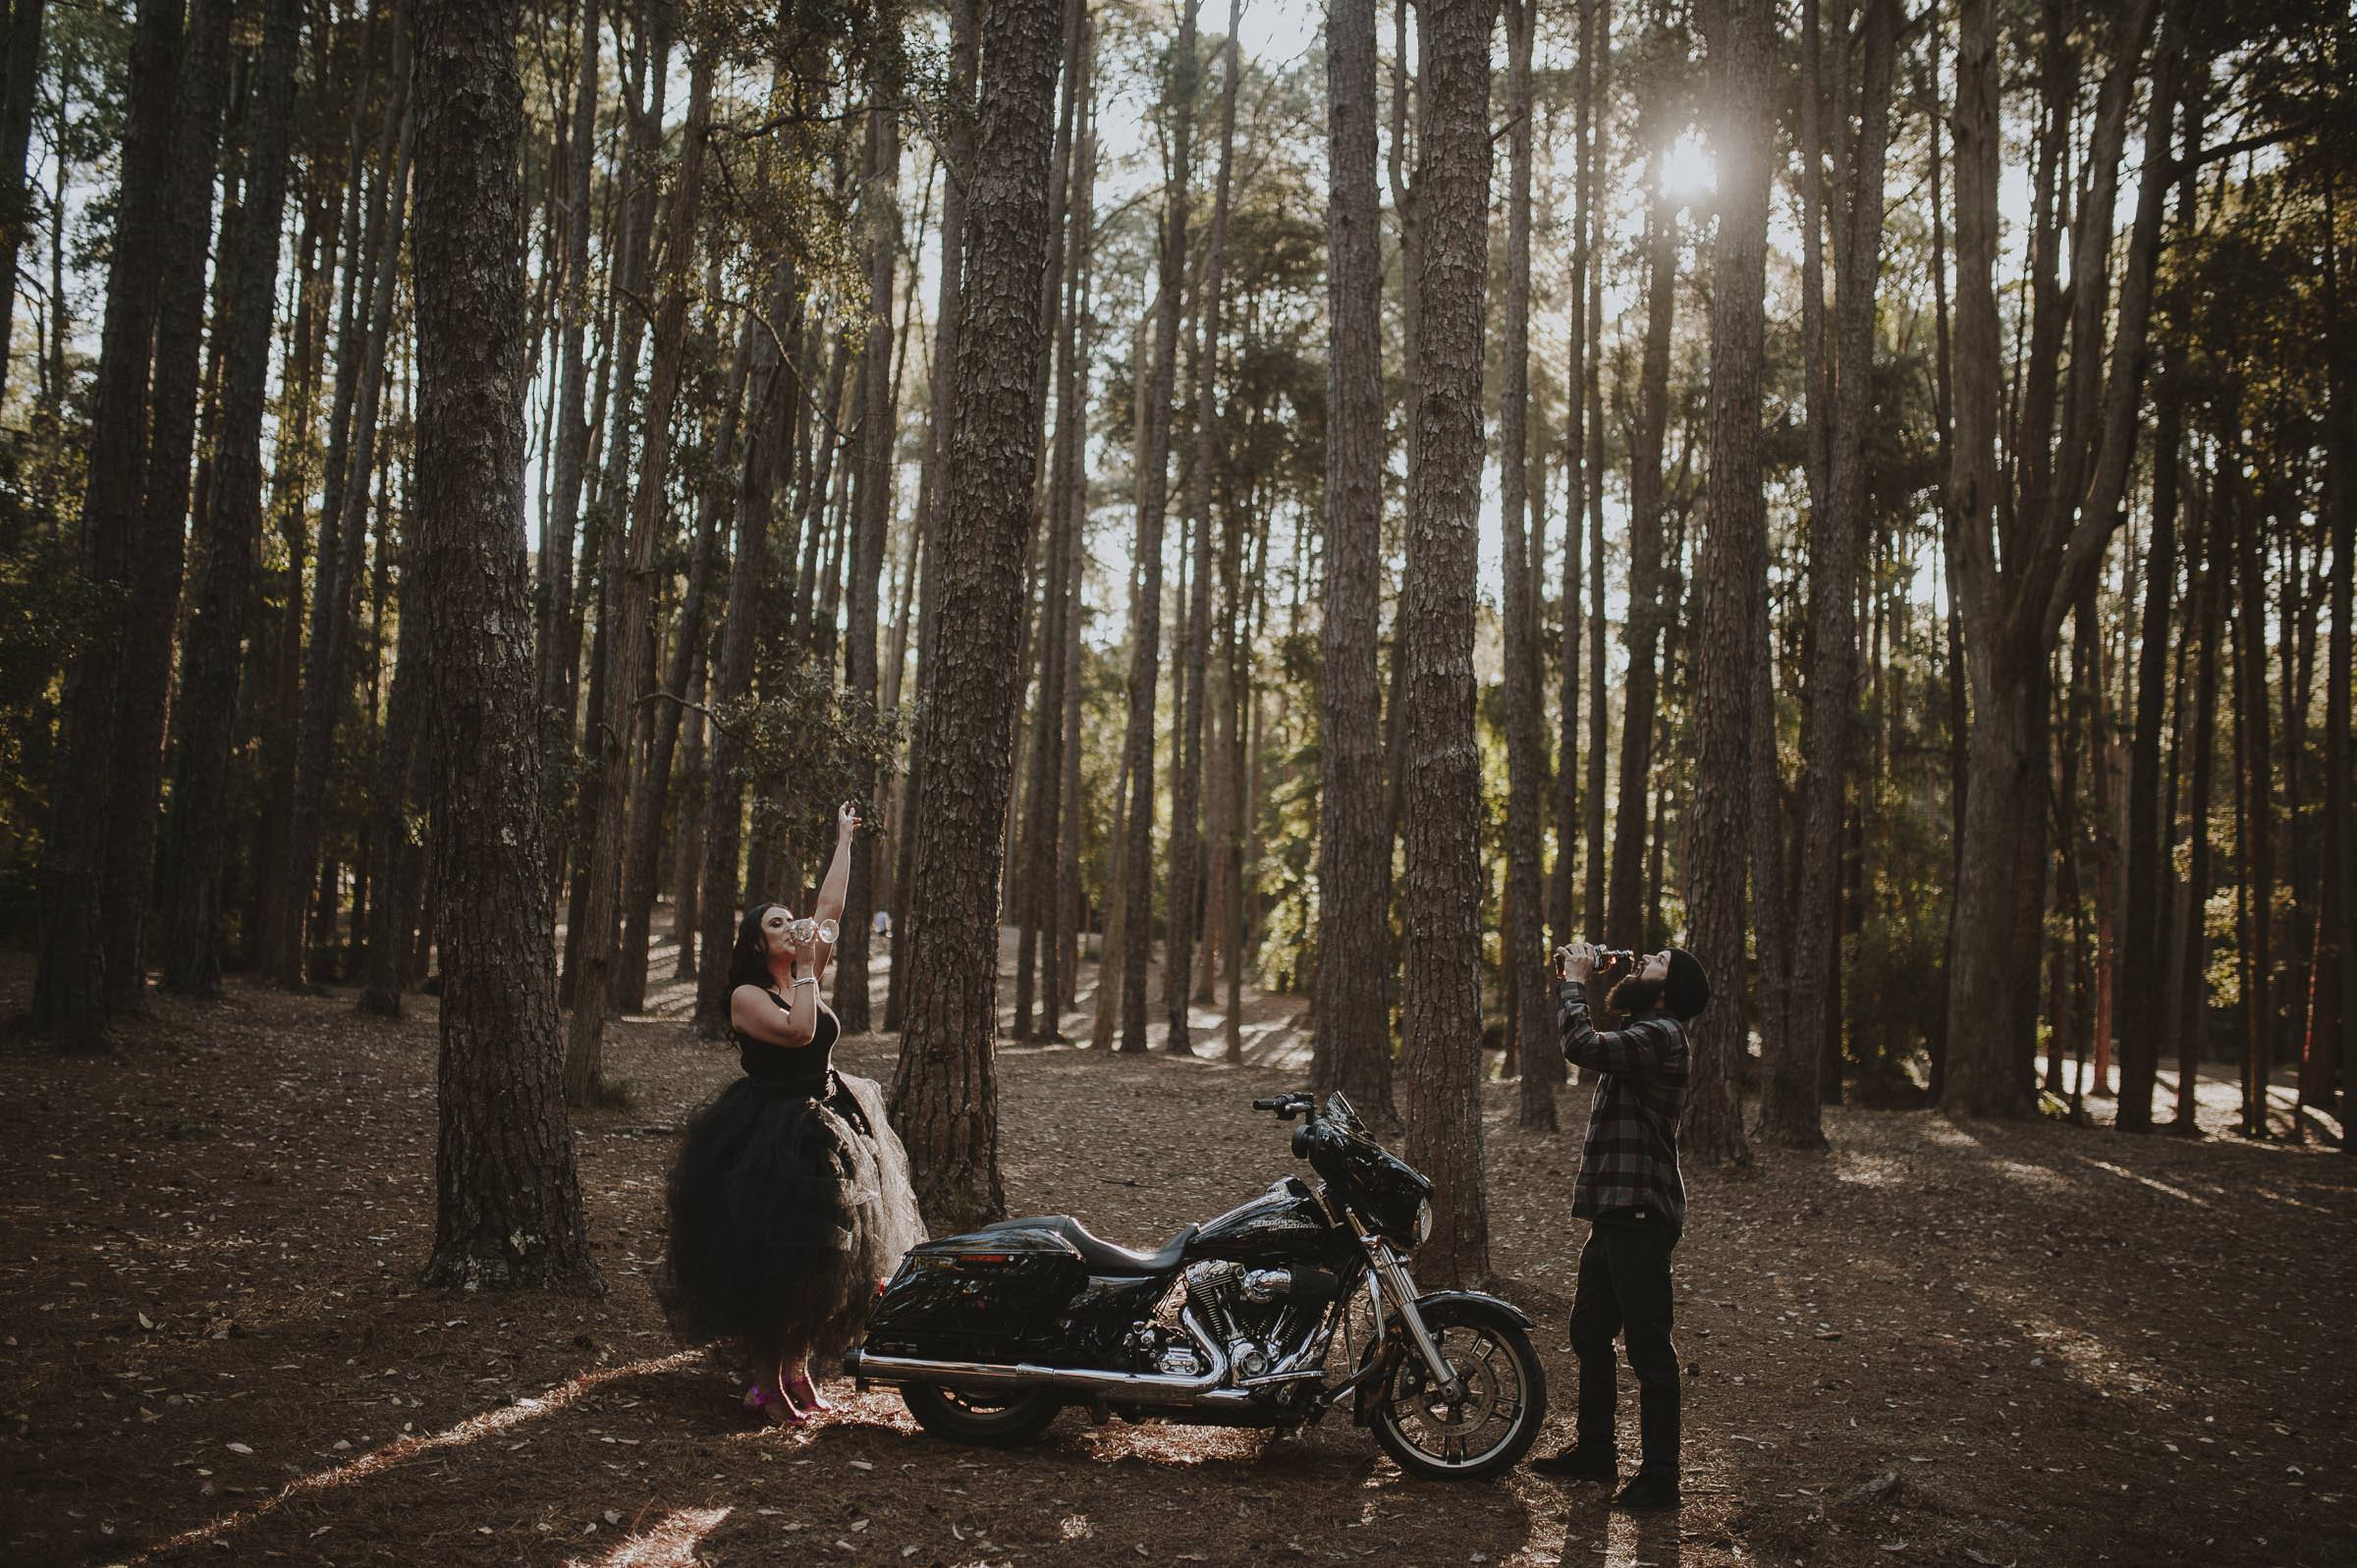 Madeline_Jamie_Watagens_Pine_Forest_Engagement_Shoot_Blog-21.jpg